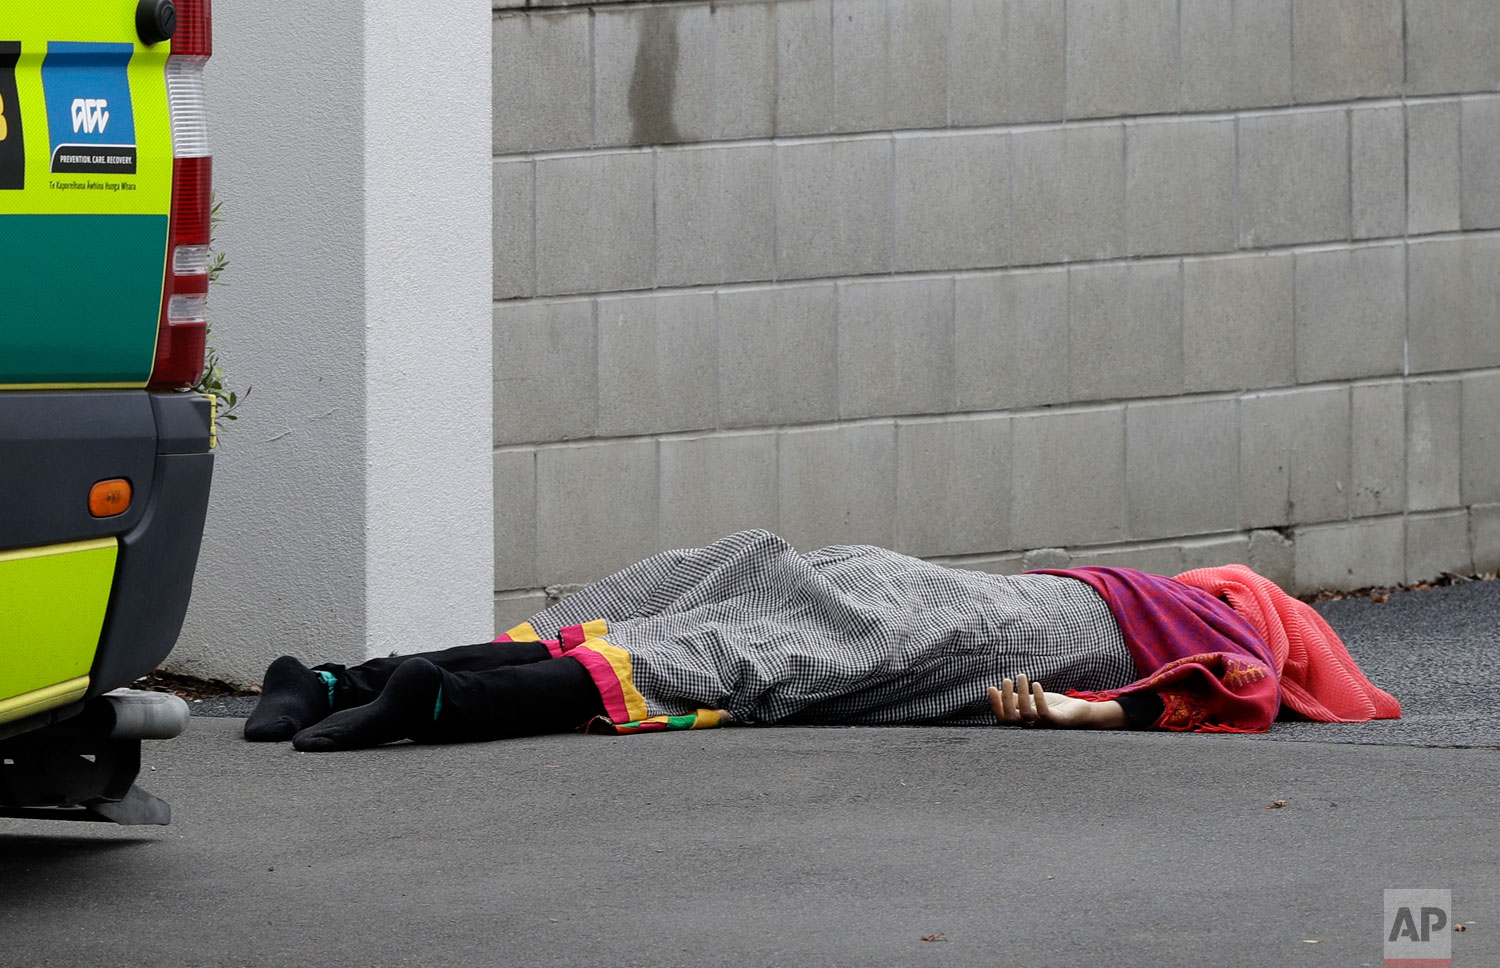 A body lies on the footpath outside a mosque in central Christchurch, New Zealand, Friday, March 15, 2019. (AP Photo/Mark Baker)